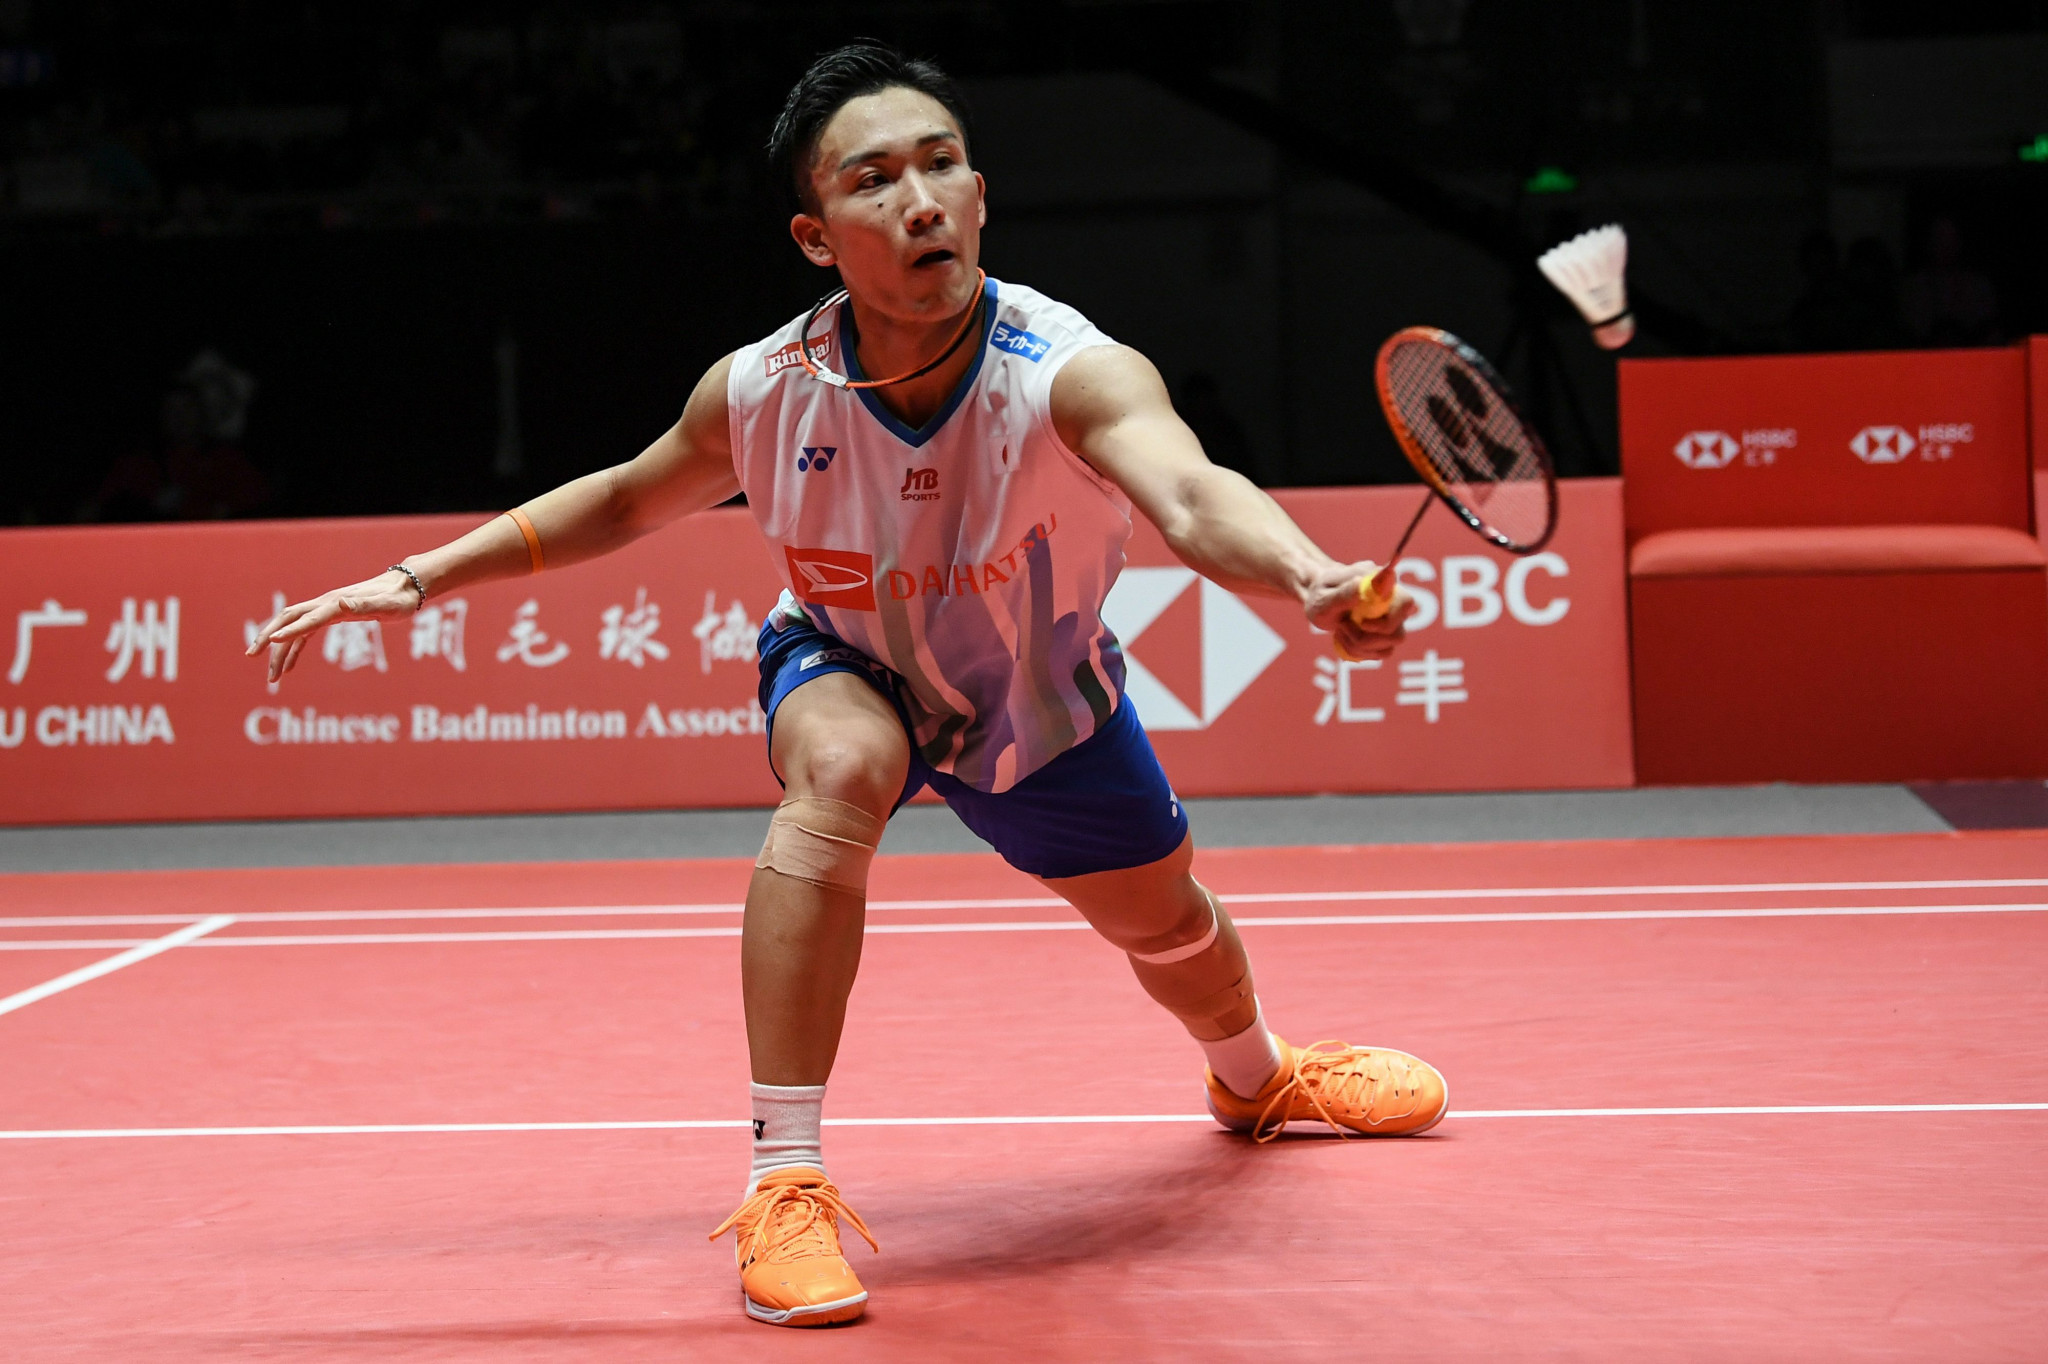 Top seed Kento Momota suffered a shock first-round exit from the BWF Malaysia Masters after losing to fellow Japanese player Kenta Nishimoto in Kuala Lumpur today ©Getty Images